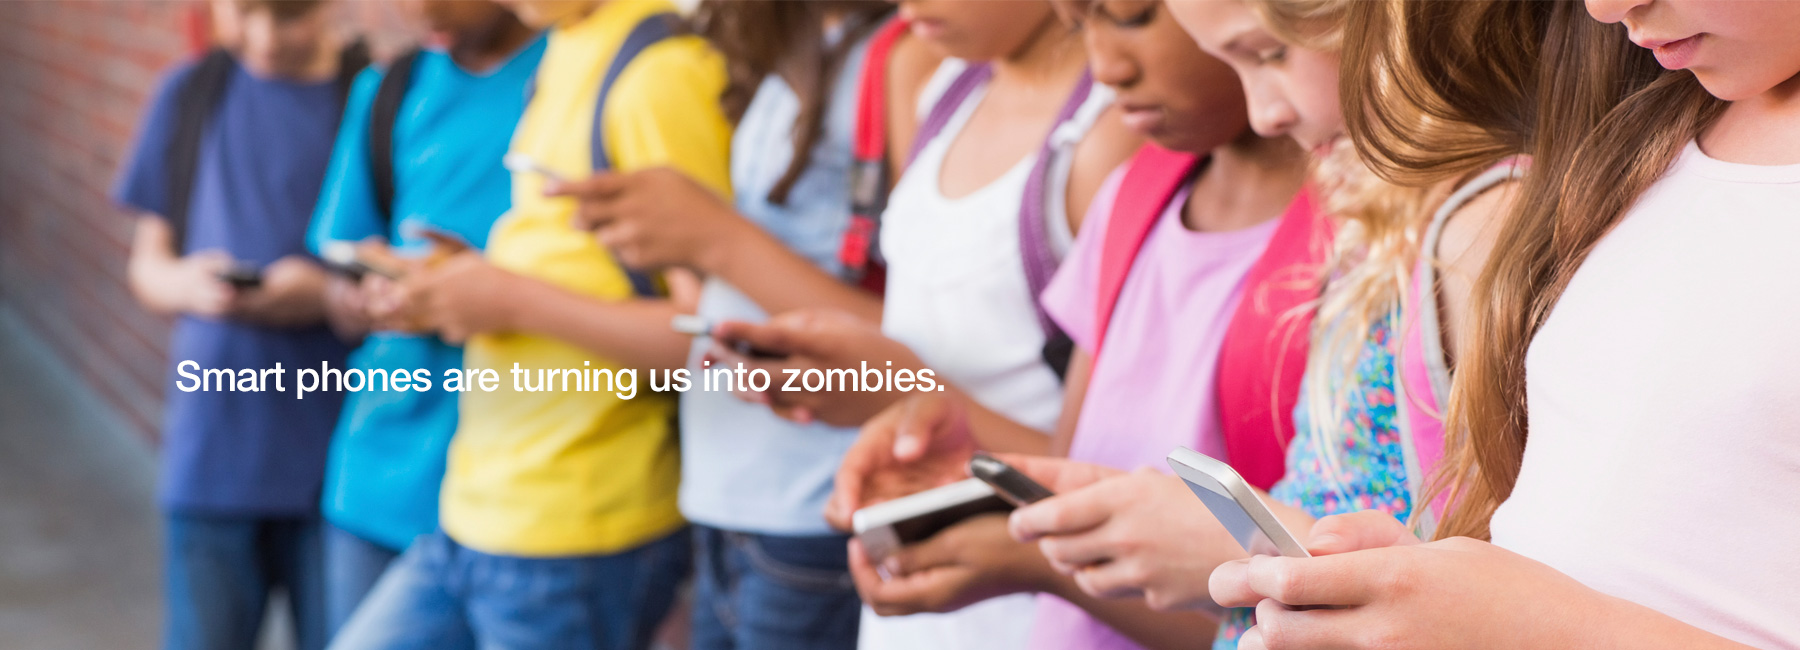 Resources for keeping your kids off cell phones & smartphones.